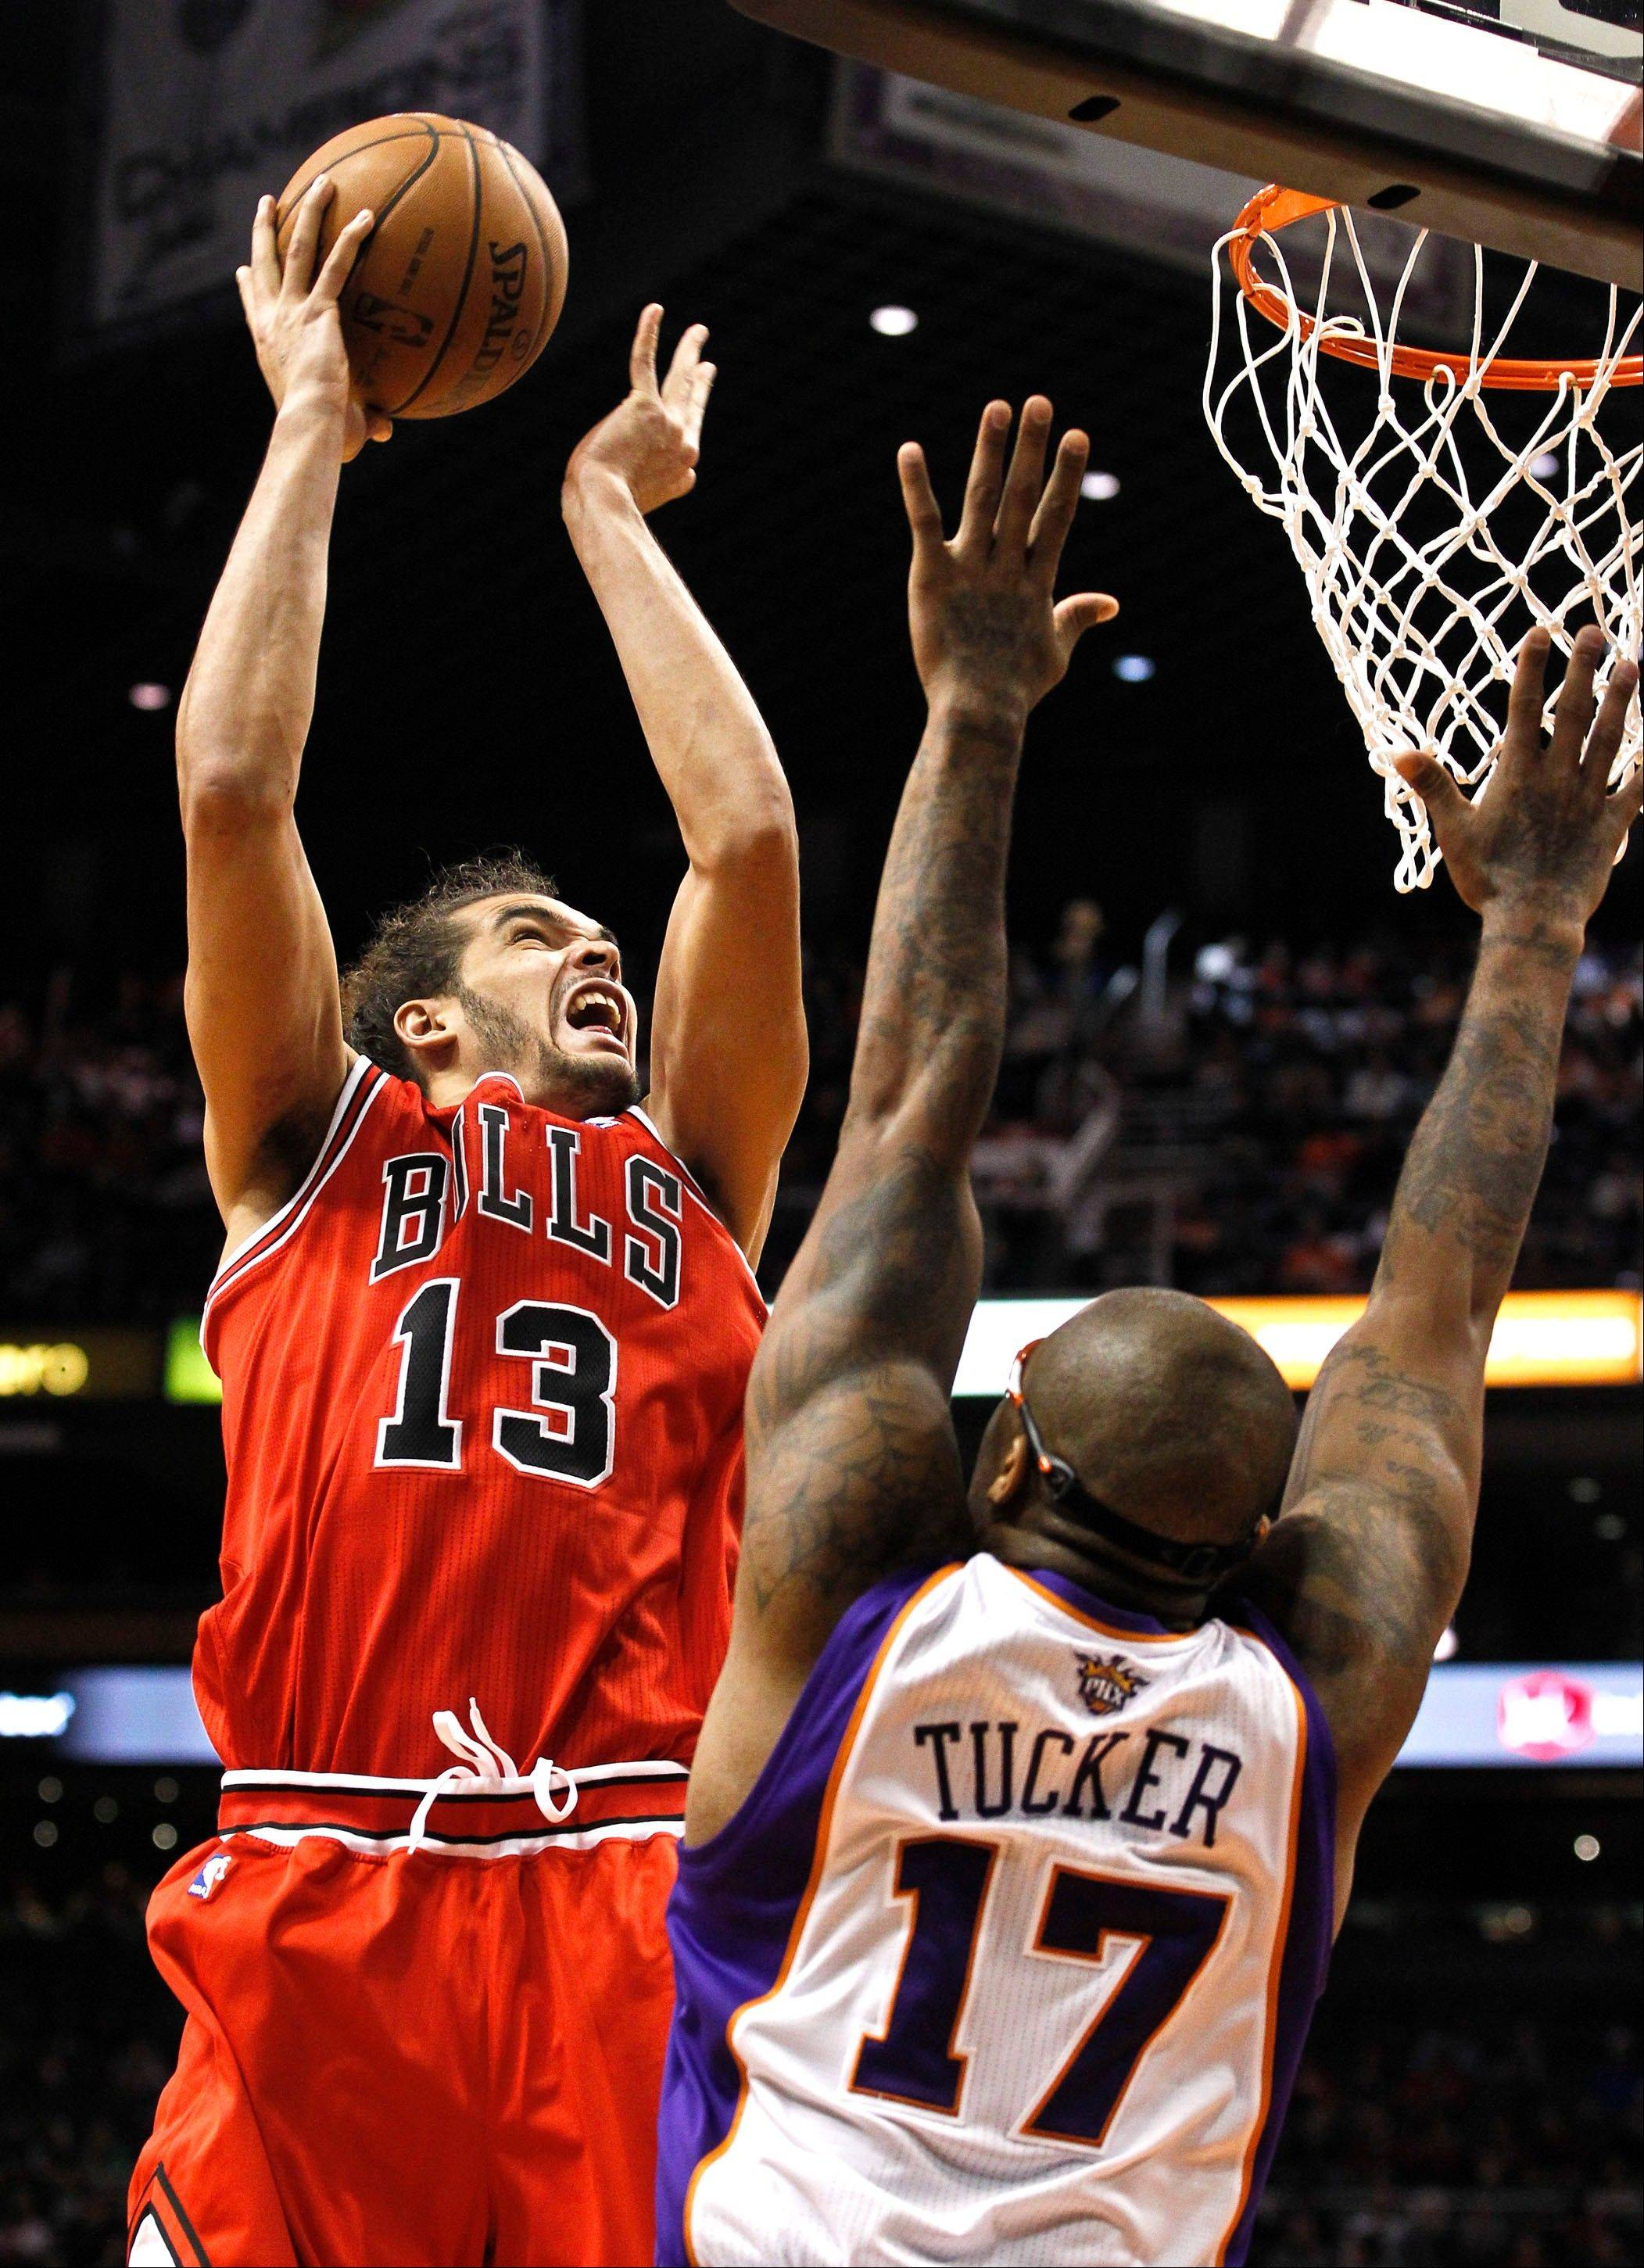 Chicago Bulls' Joakim Noah (13) shoots over Phoenix Suns' P.J. Tucker (17) during the first half of an NBA basketball game, Wednesday, Nov. 14, 2012, in Phoenix.